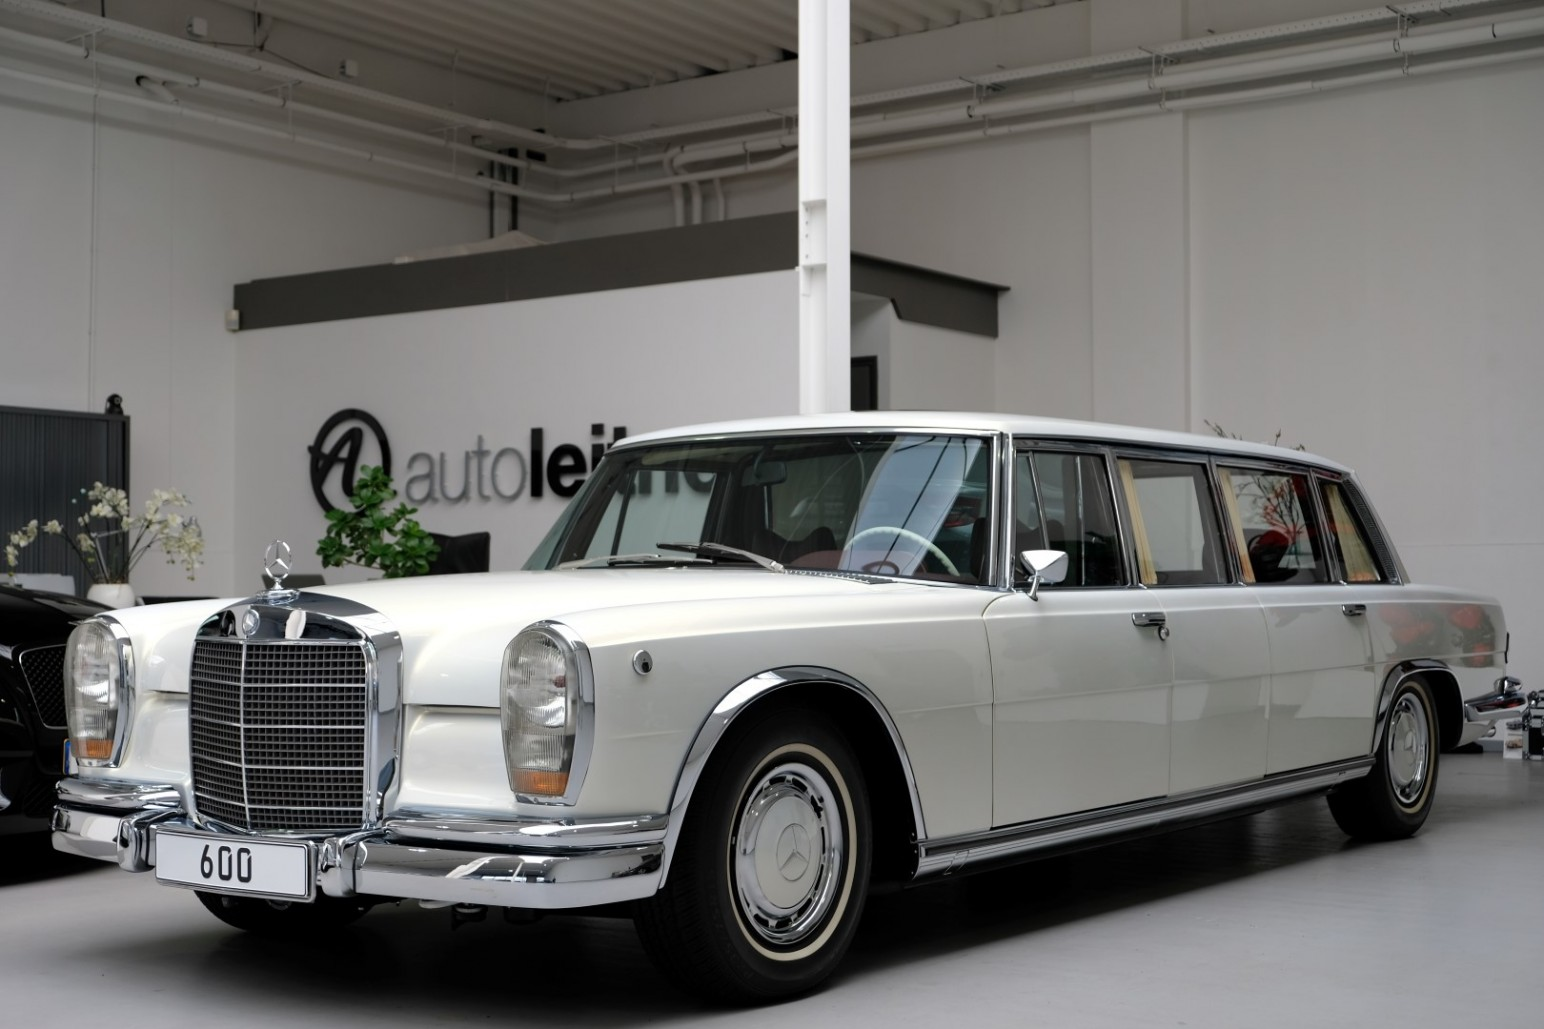 1975 Mercedes-Benz 600 Pullman for Sale – $2.6 Million Price Tag